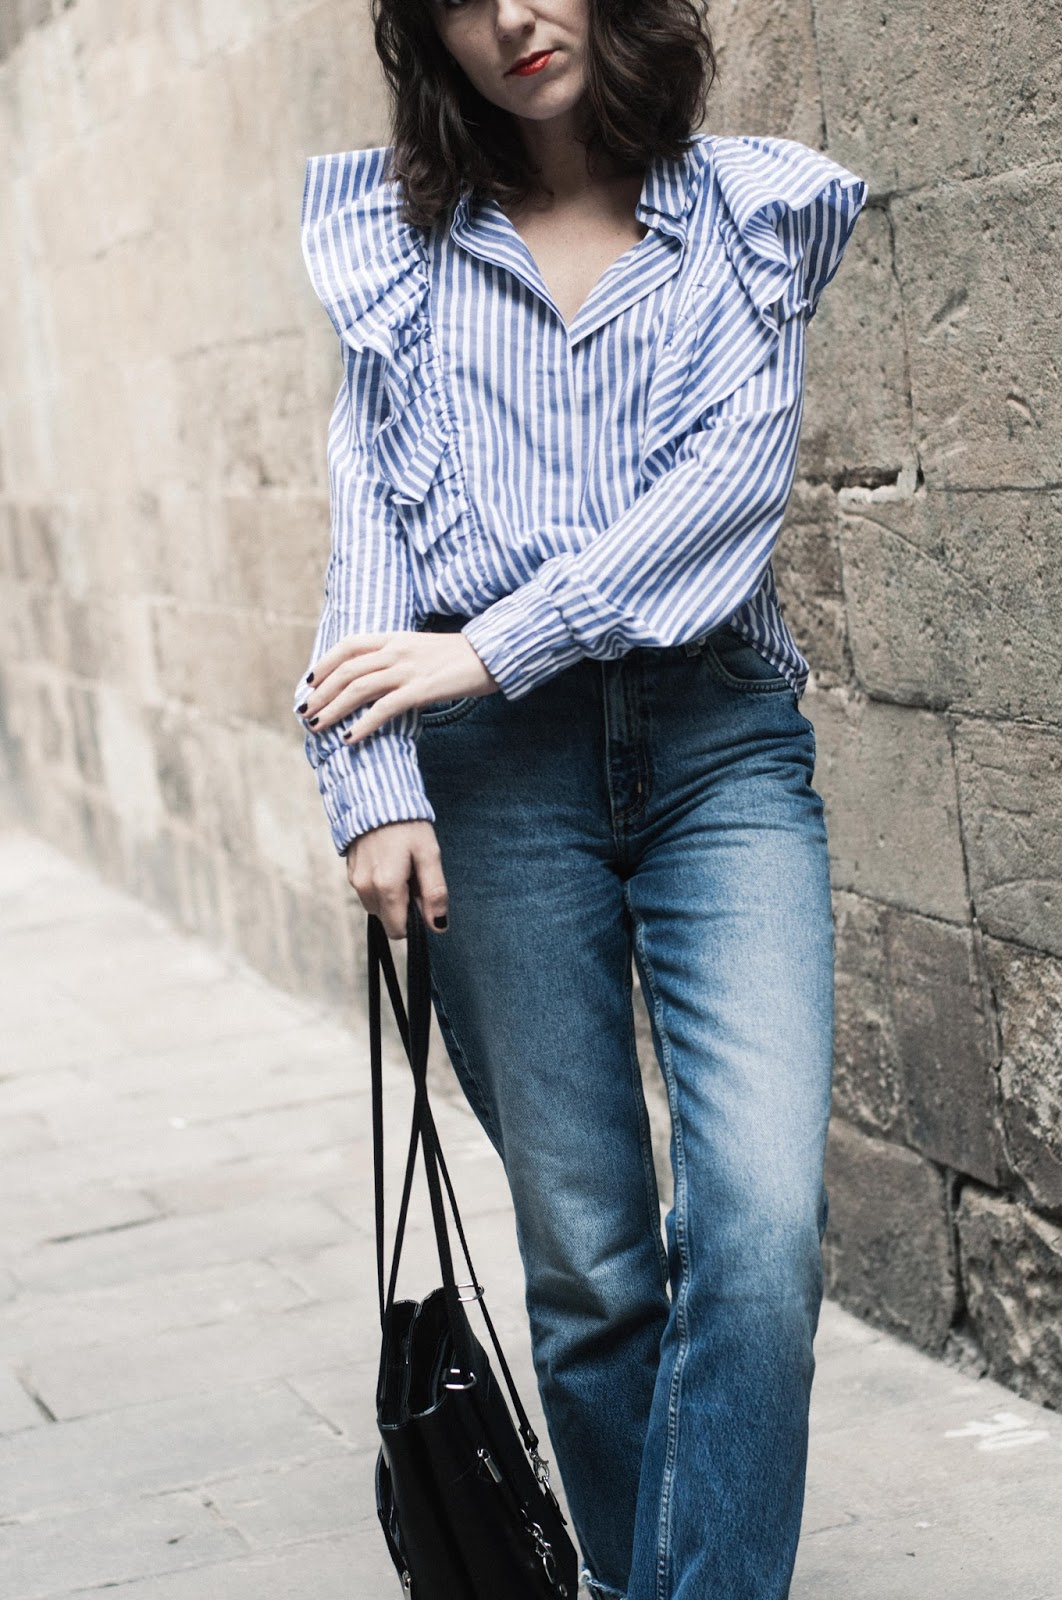 Camisa Bershka, jeans & Other Stories, mocasines slip-on H&M